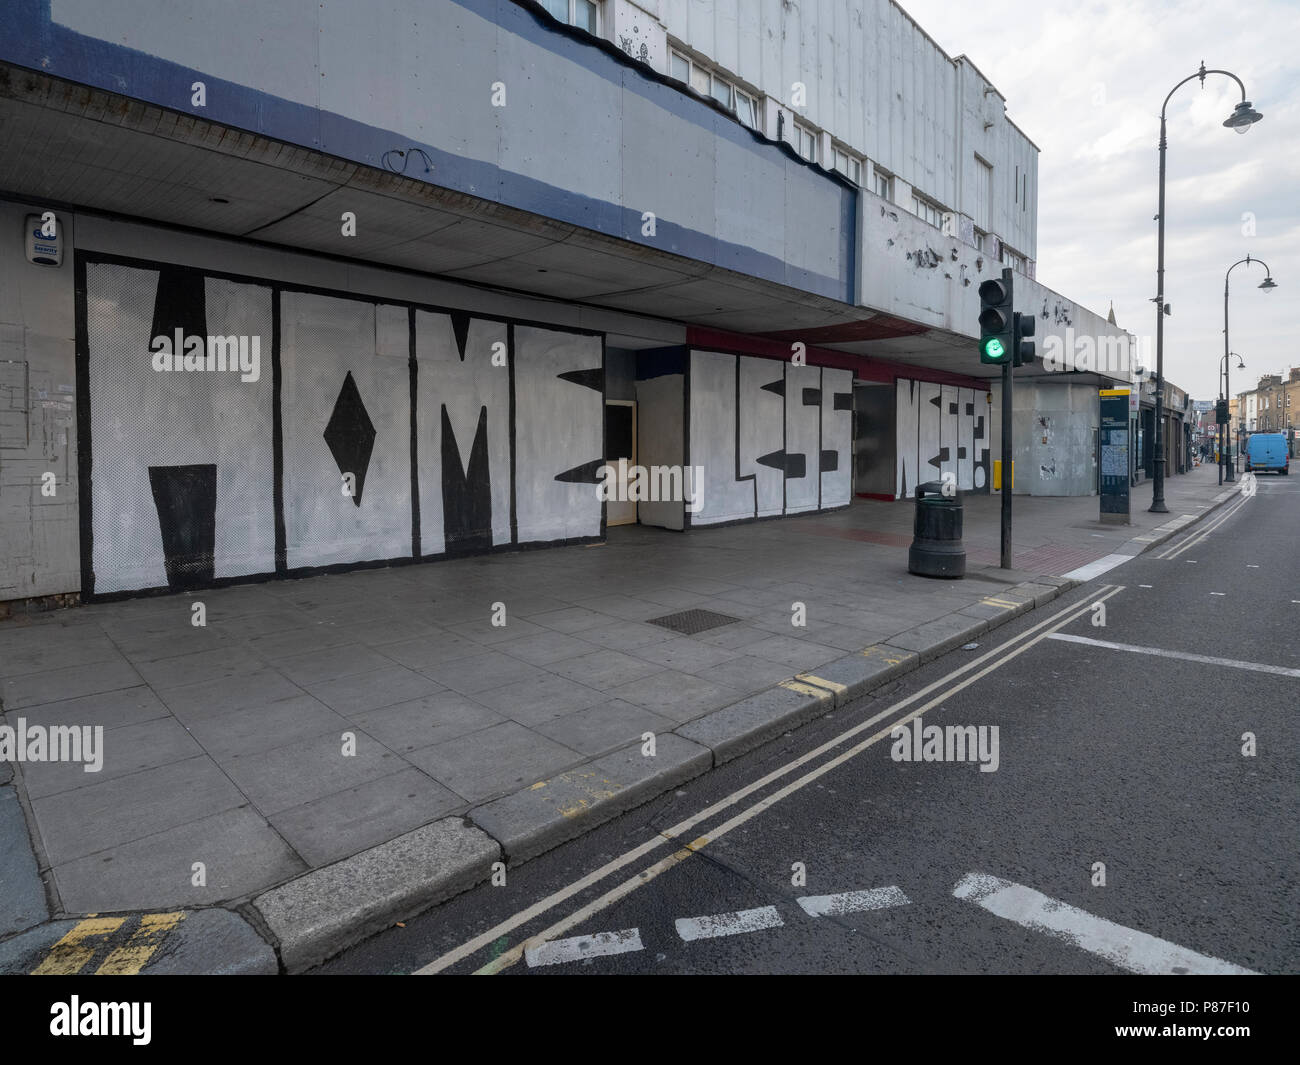 Kentish Town, London, Homelessness graffiti on the outside of an abandoned building making a statement about the need for more housing in London - Stock Image